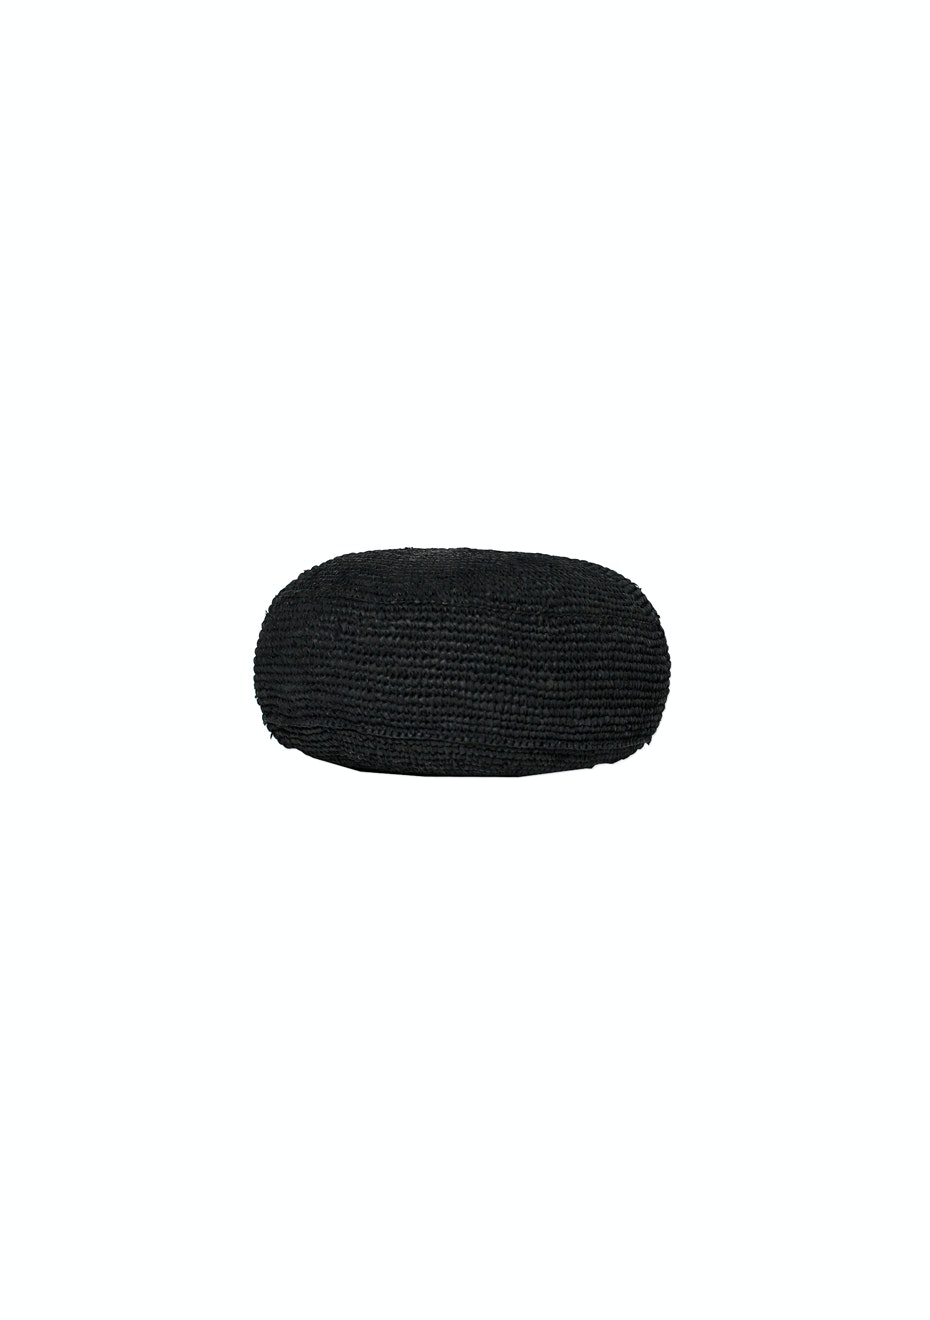 Seagrass Pouf   Black   On Trend Furniture U0026 More   Onceit